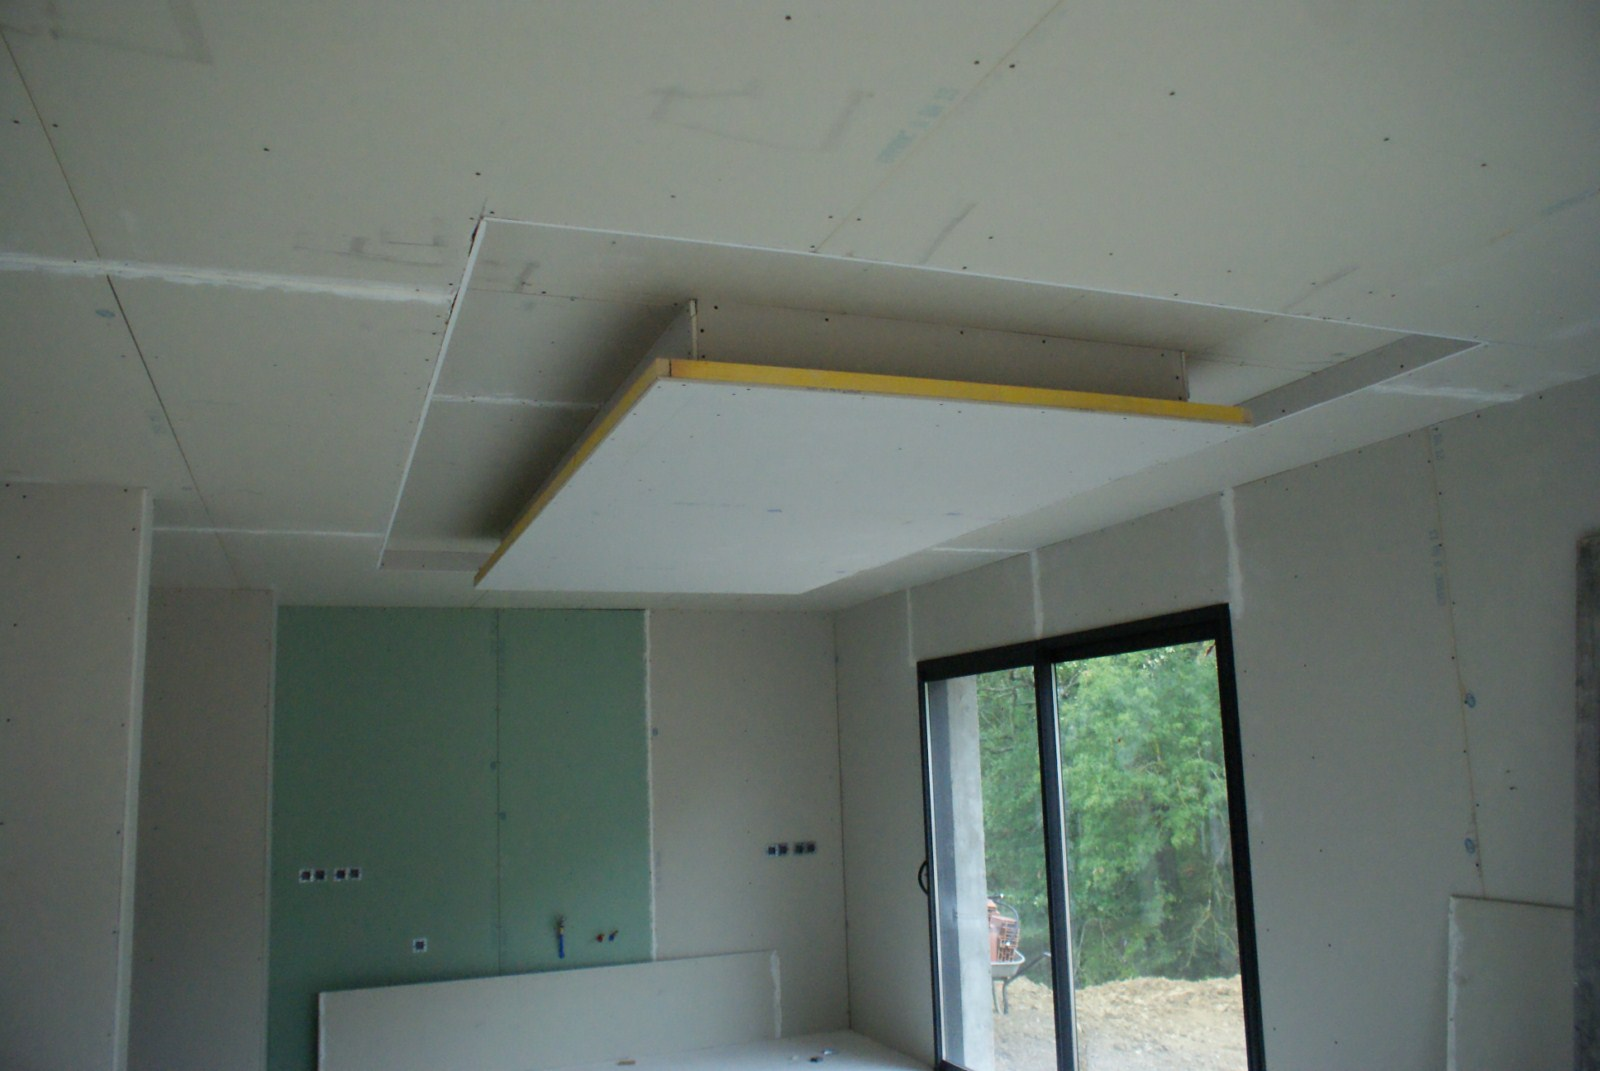 Finitions nous voila la maison de marie tom for Plafond de cuisine design